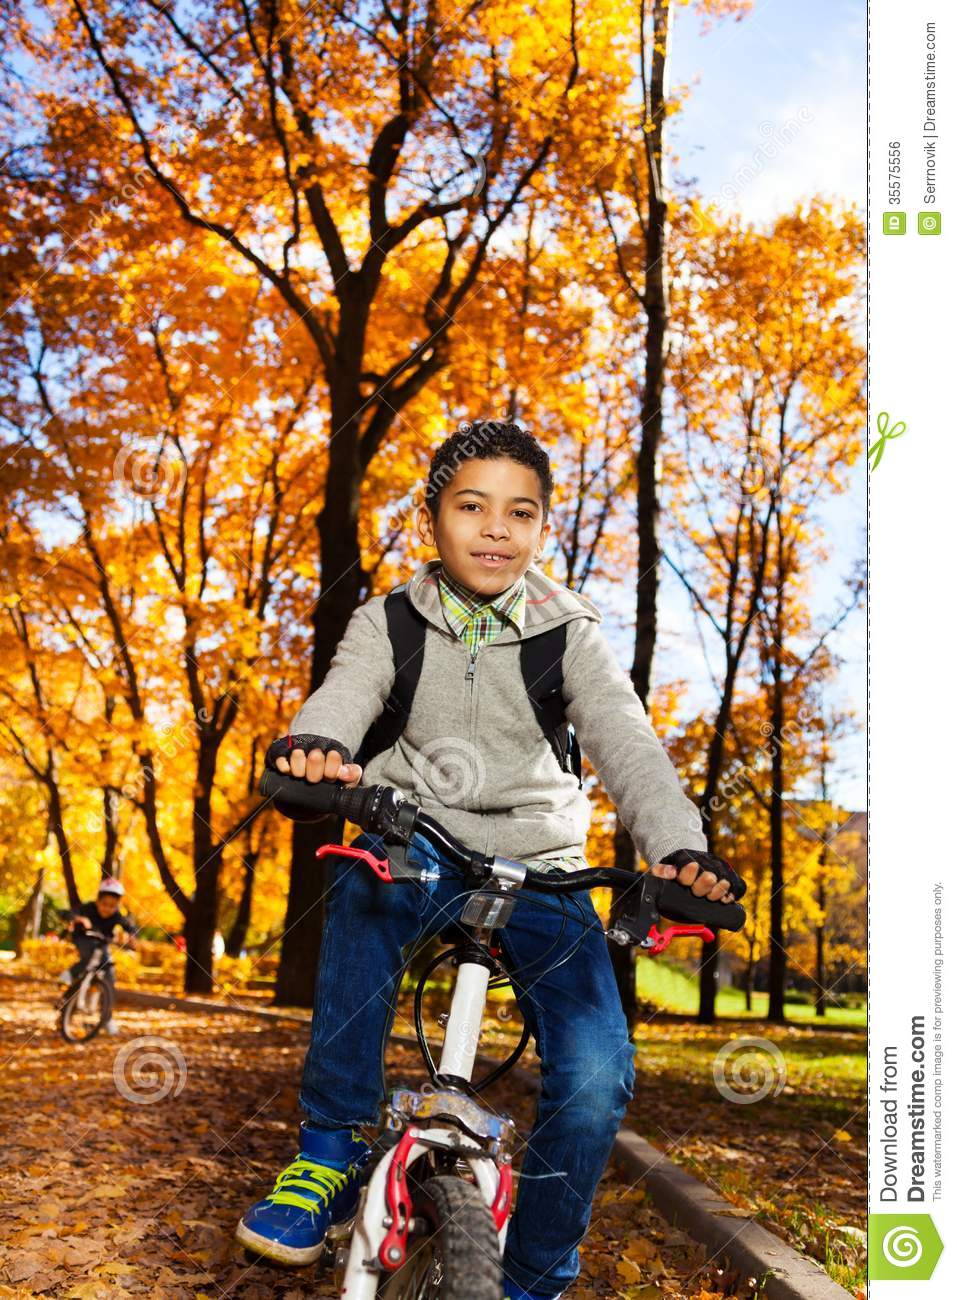 Kids On A Bike In Autumn Park Stock Photo Image Of